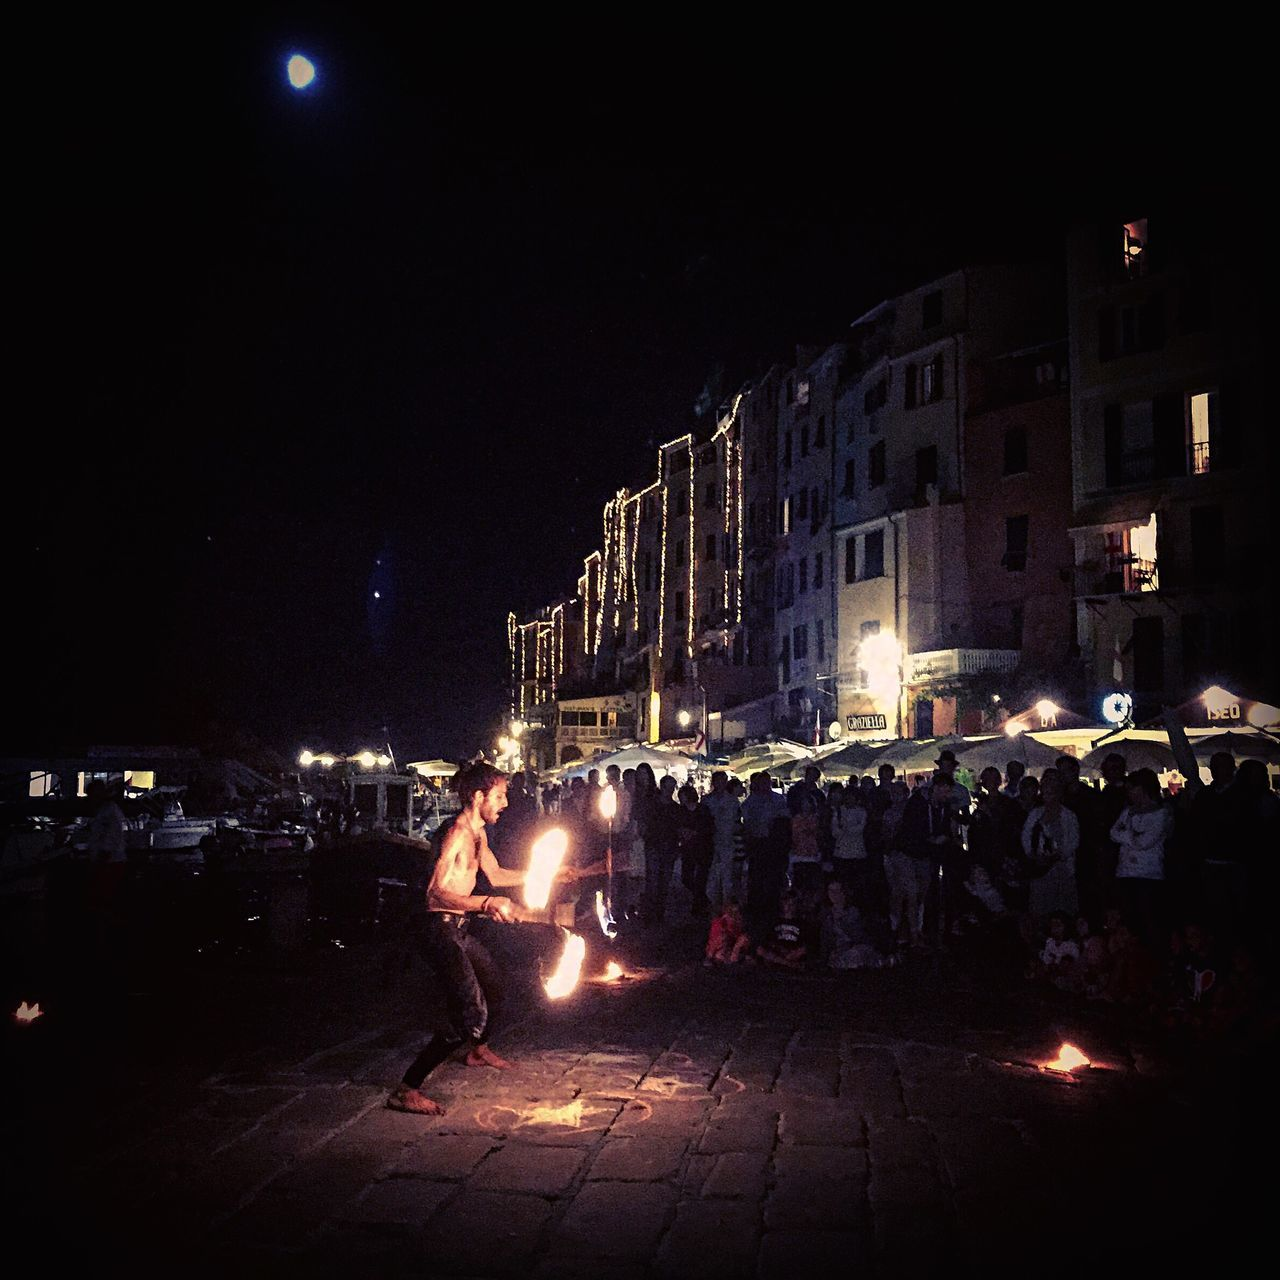 Night Building Exterior Street Illuminated Outdoors Real People Celebration Architecture Sky Crowd People One Man Only Fire Fire Dancer Italy Italia Street Entertainment Street Entertainer Portovenere Moon Village Coast Fire Juggler Welcome To Black Art Is Everywhere The Street Photographer - 2017 EyeEm Awards The Architect - 2017 EyeEm Awards Neighborhood Map